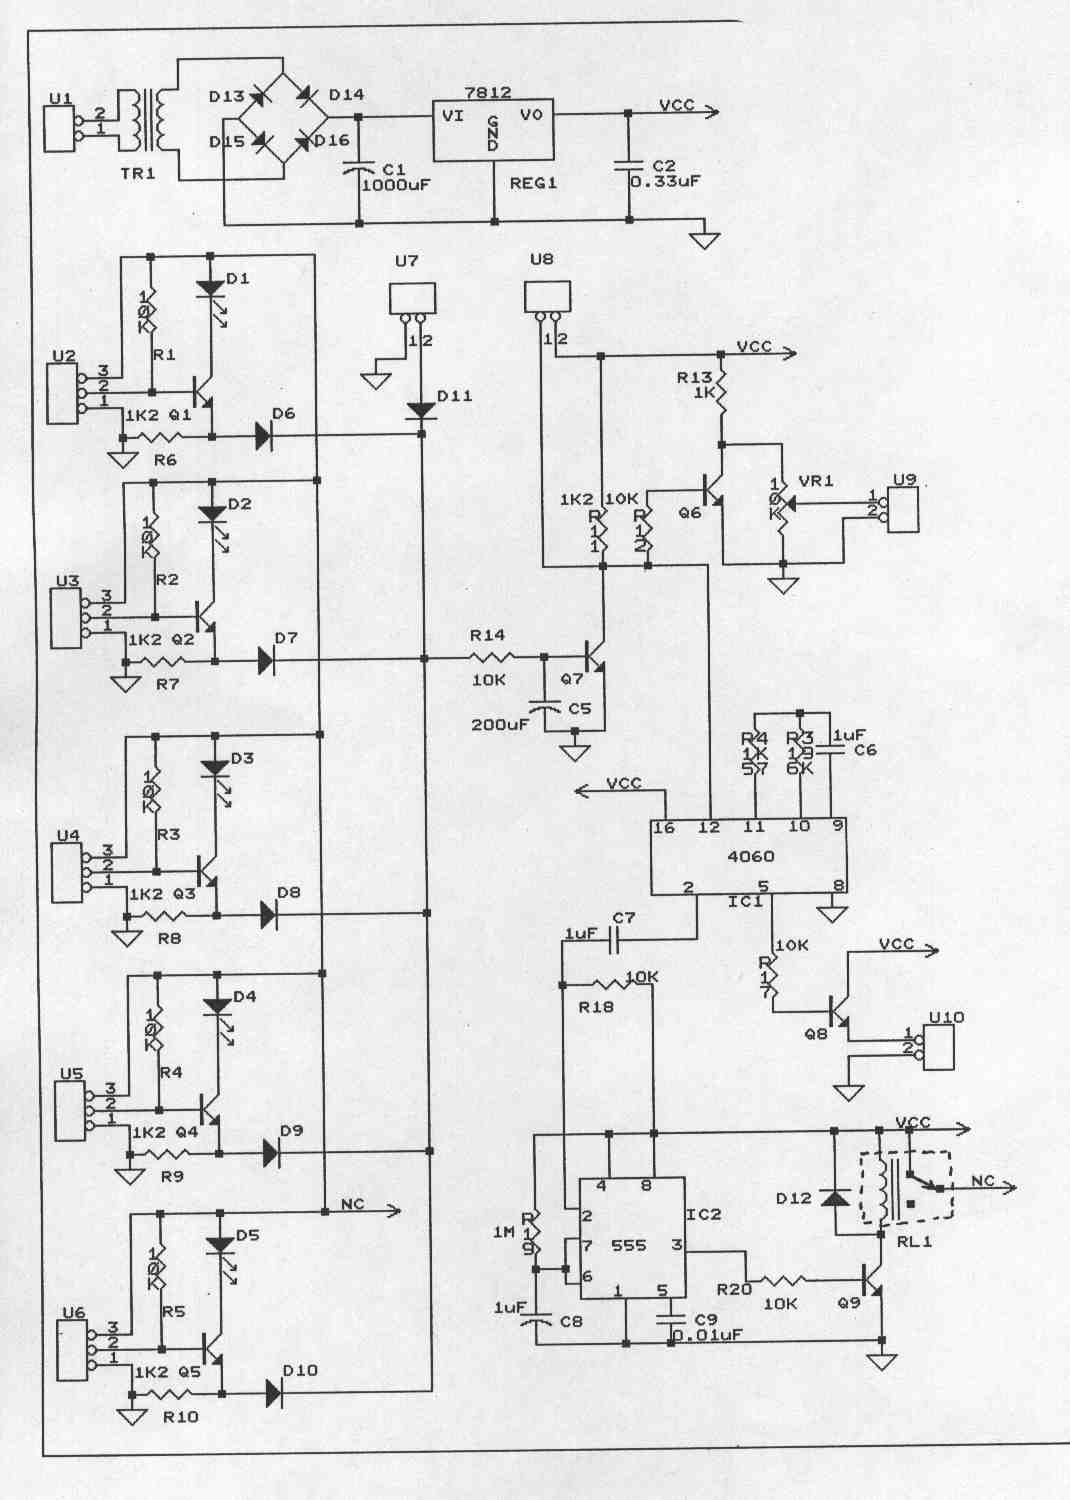 Simple Alarm Control Panel Wiring Diagrams Diagram Will Be Simplex Fire Smoke And System National Centre For Radio Astrophysics Rh Ncra Tifr Res In Basic